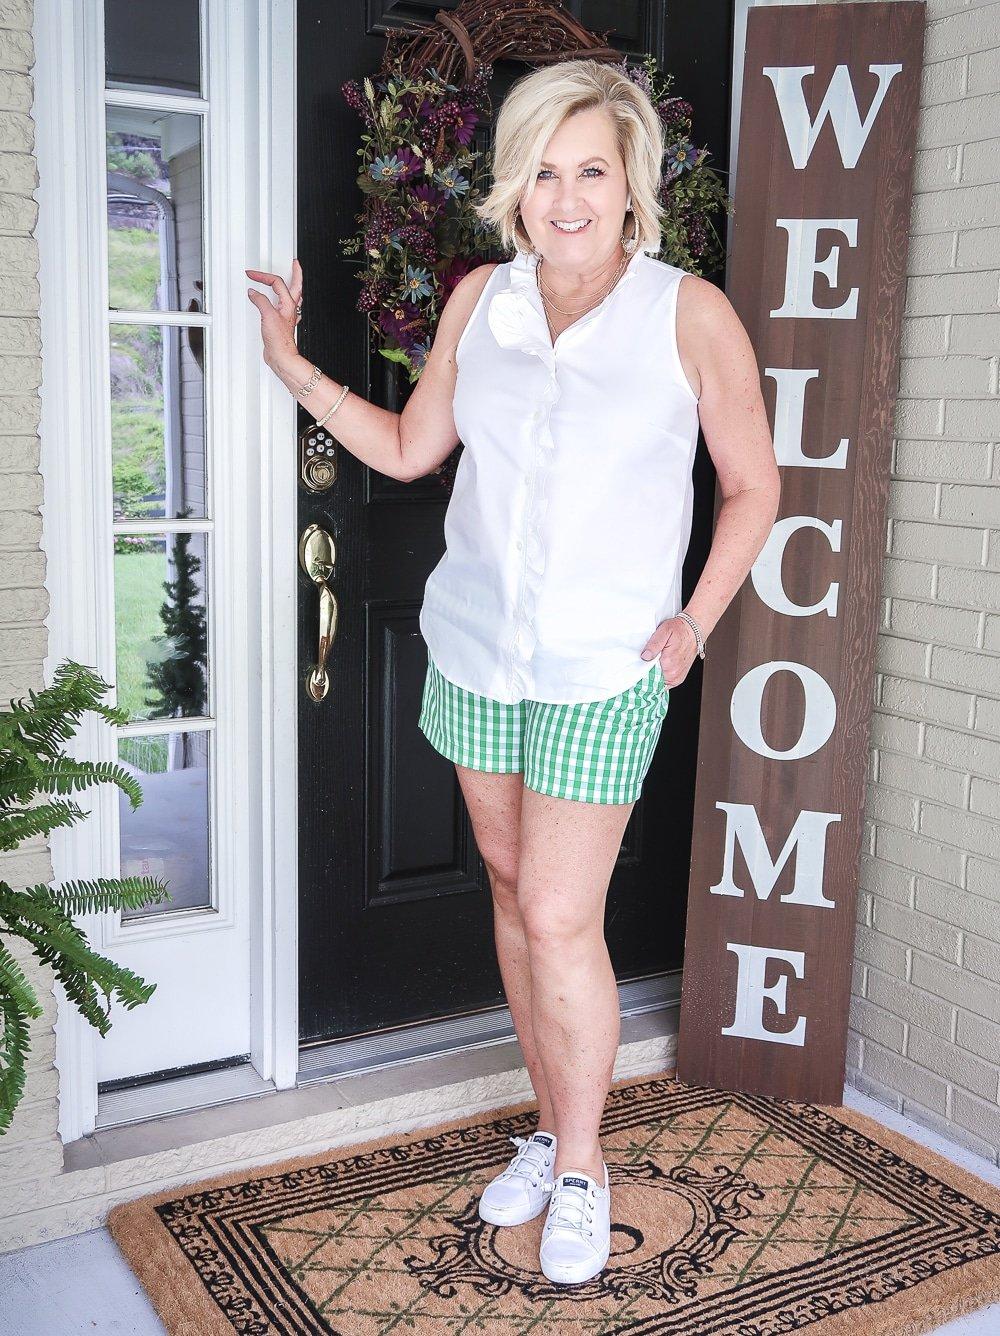 FASHION BLOGGER 50 Is Not Old wearing a sleeveless top with a ruffled placket and green gingham shorts with a pair of slip on sneakers.